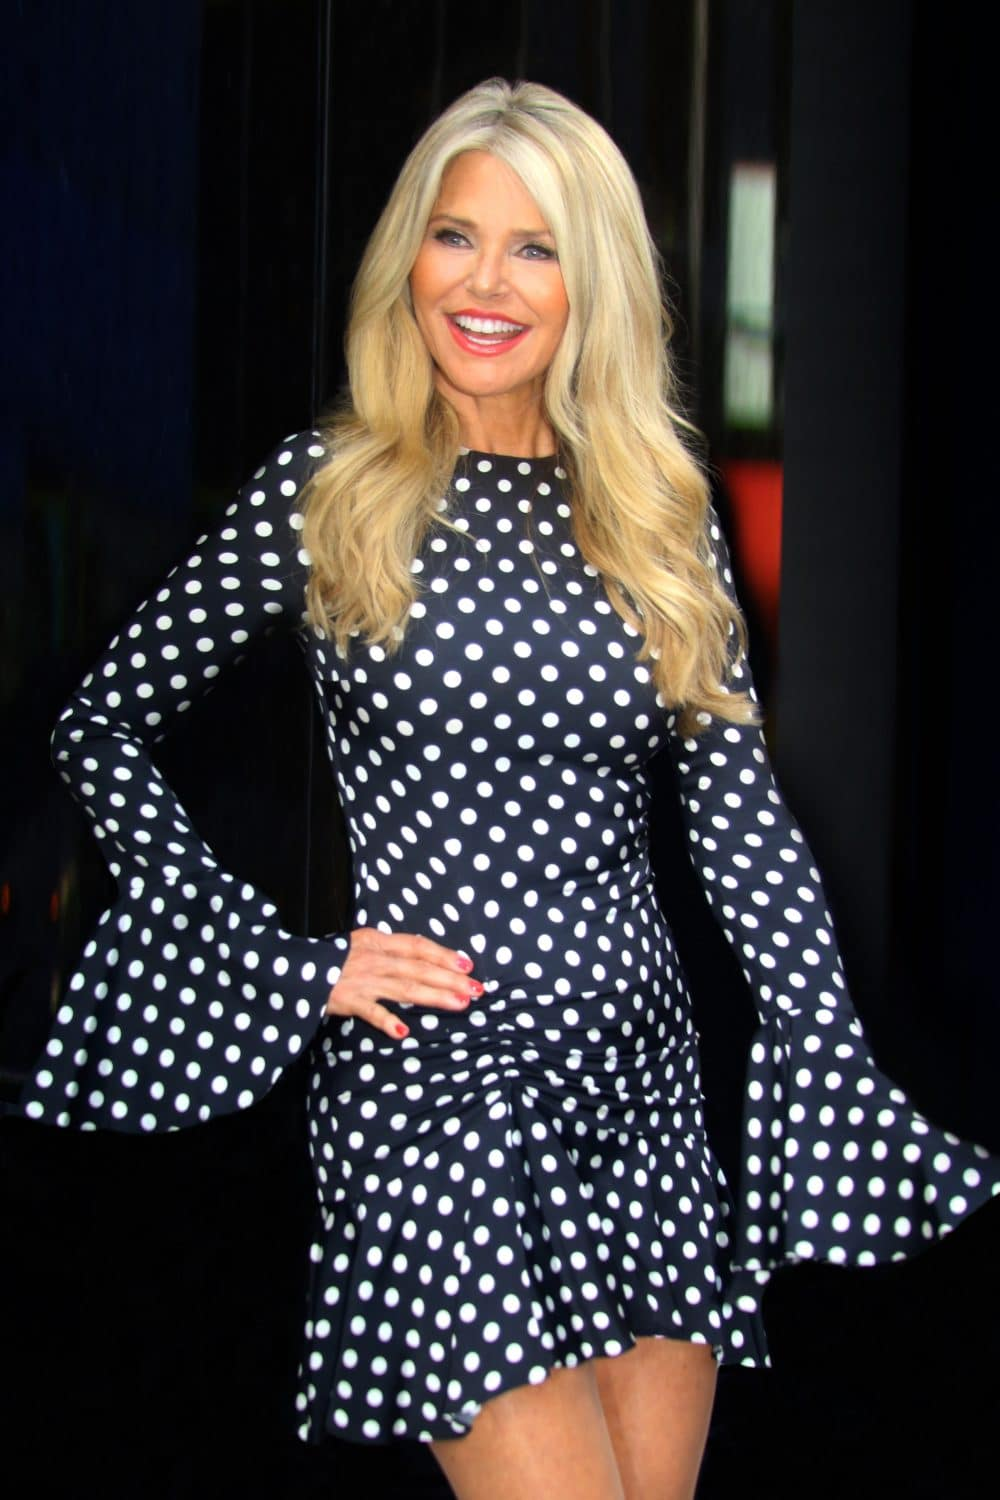 Christie Brinkley - Godmother of Seven Seas Splendor